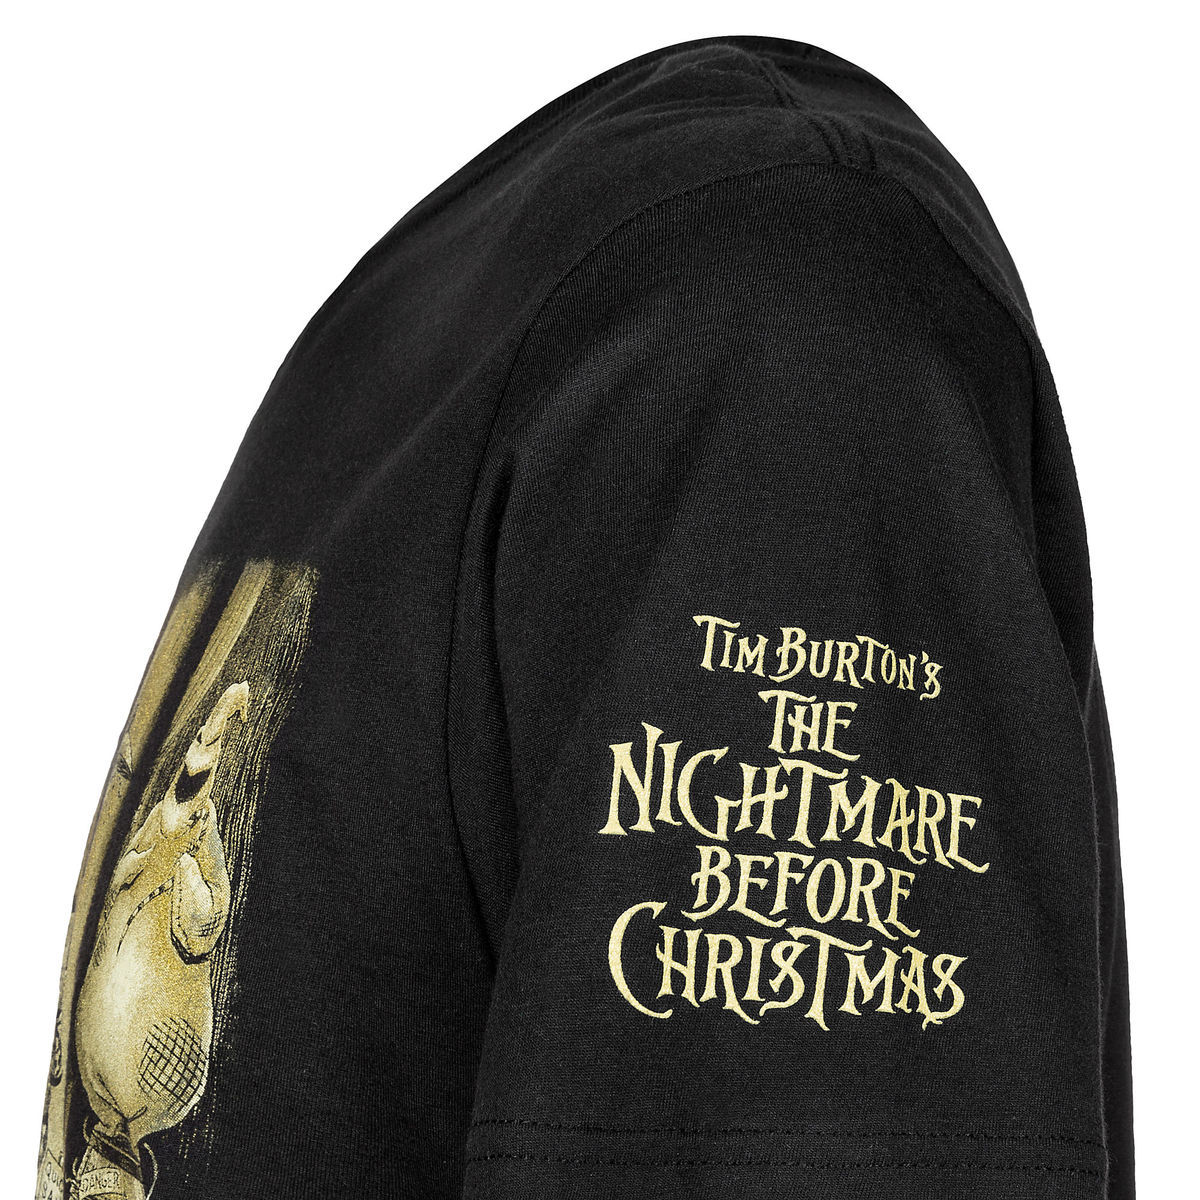 The Nightmare Before Christmas T-Shirt for Adults   shopDisney